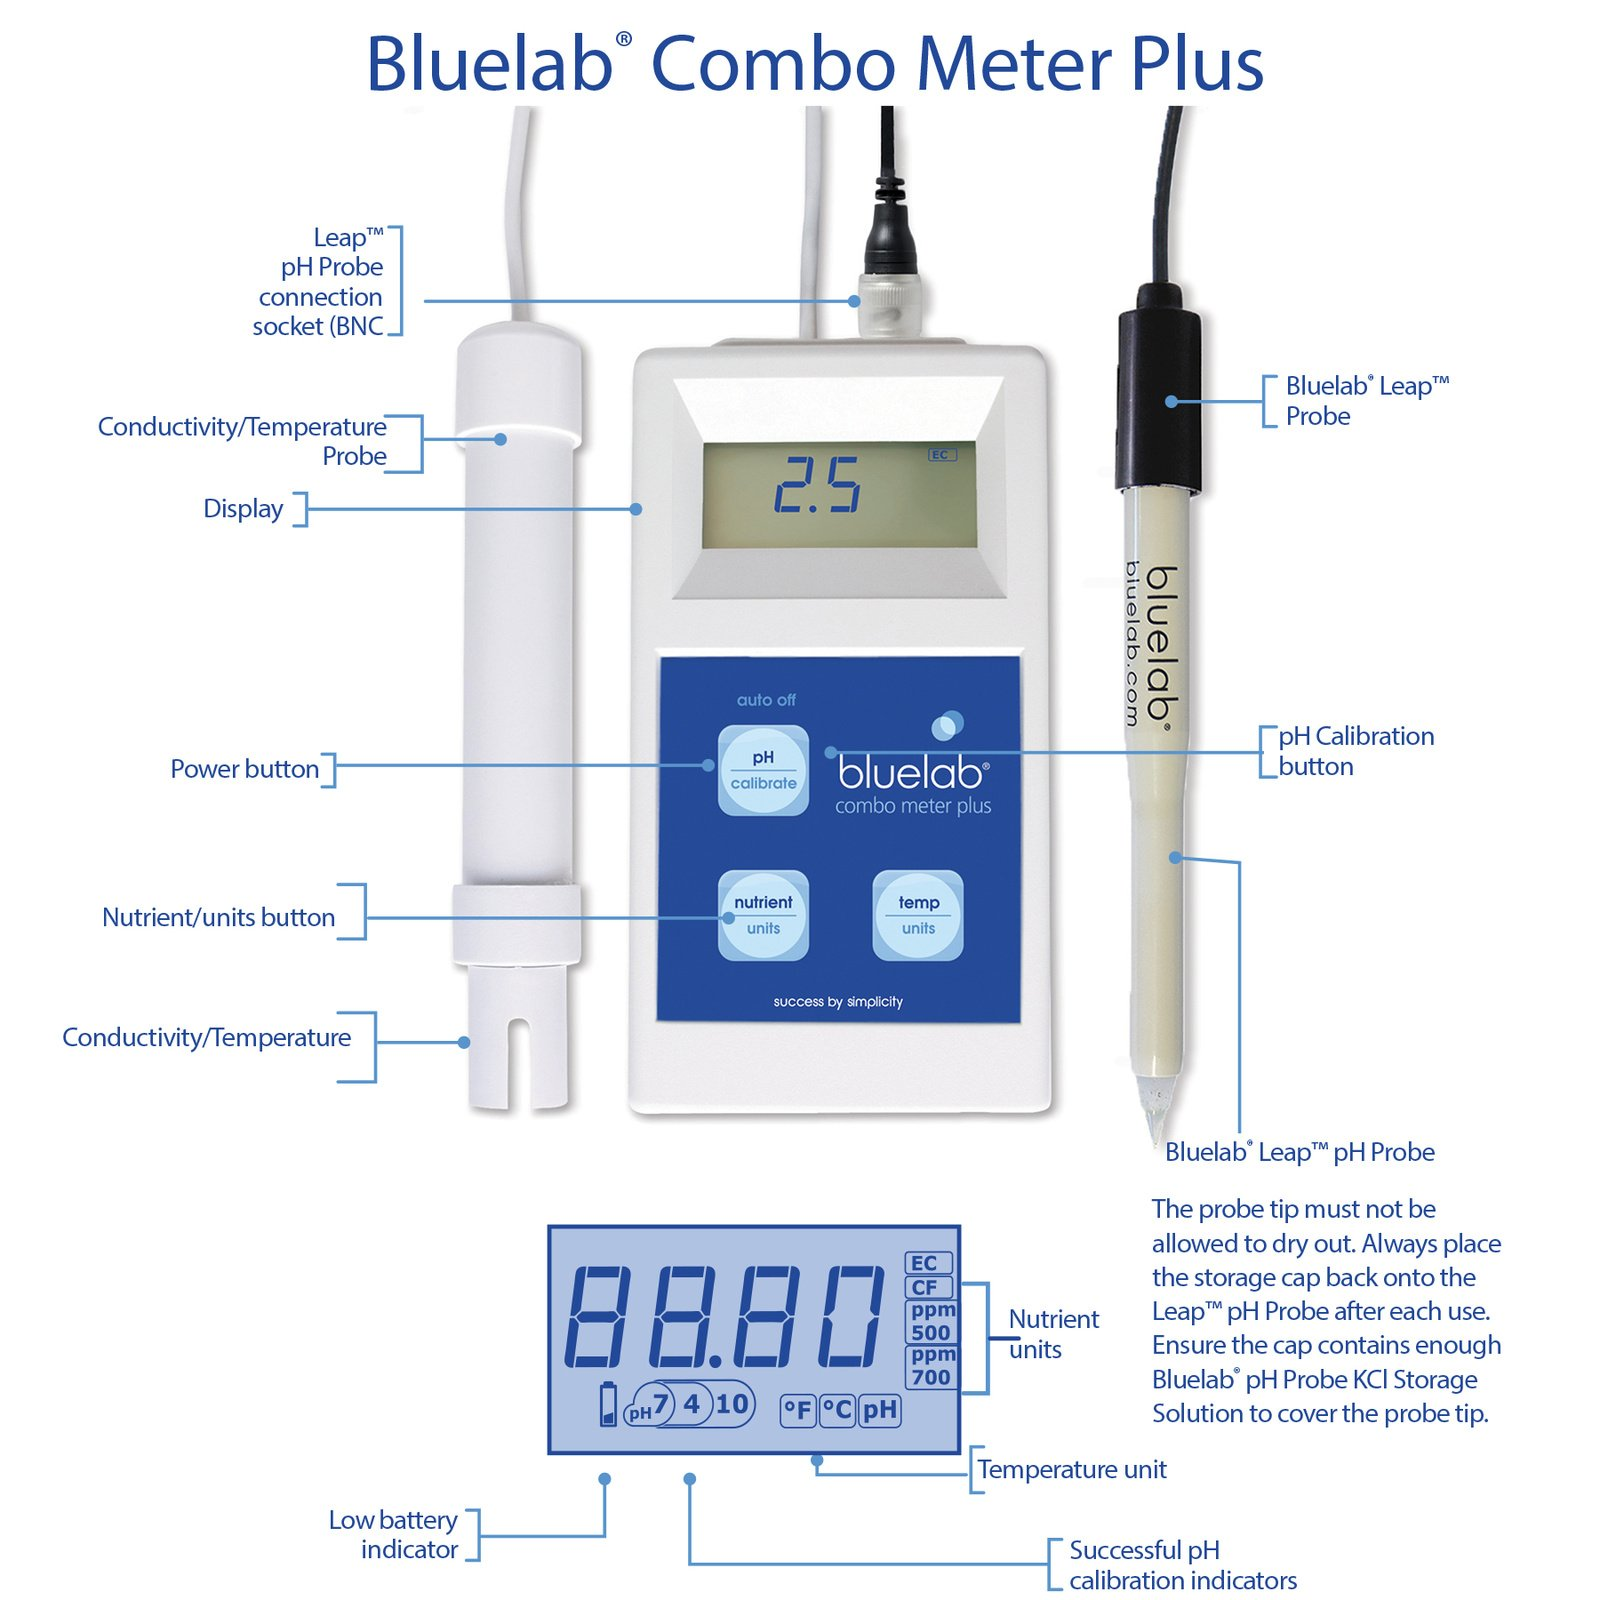 Bluelab Combo Meter Plus - Handheld Digital Hydroponic Nutrient and pH Meter for Measuring pH Levels, Conductivity & Temperature in Soil & Plants - Accurate pH Measurements - Bonus Carry Case Included by Bluelab (Image #2)